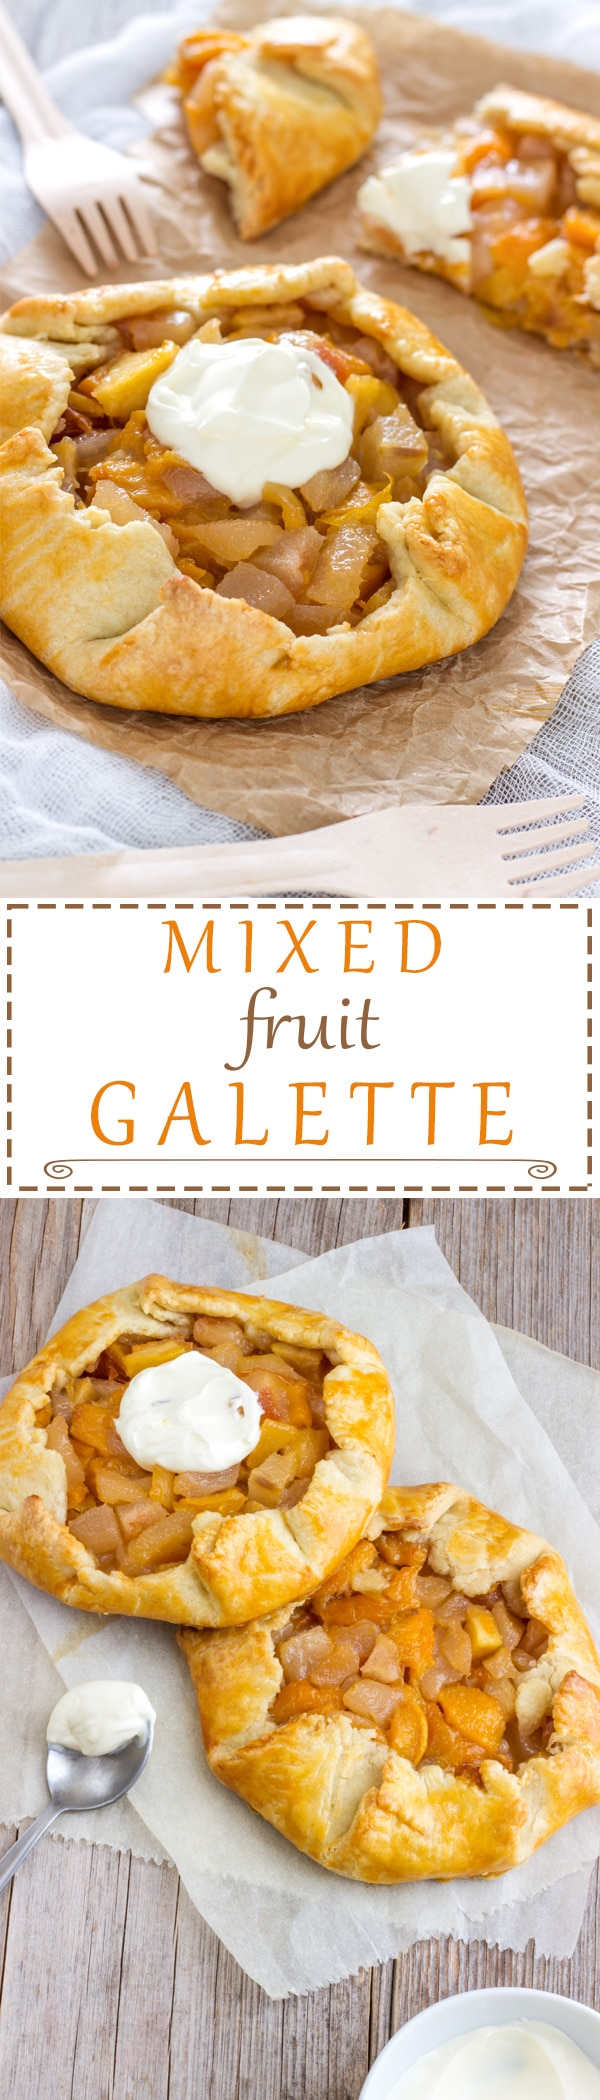 Mixed Fruit Galette is one of the easiest things to bake. What is great about #galette is that you can use any fruit you like. It's rustic, which also means it doesn't have to look perfect but it still will taste amazing. Easy homemade dessert recipe